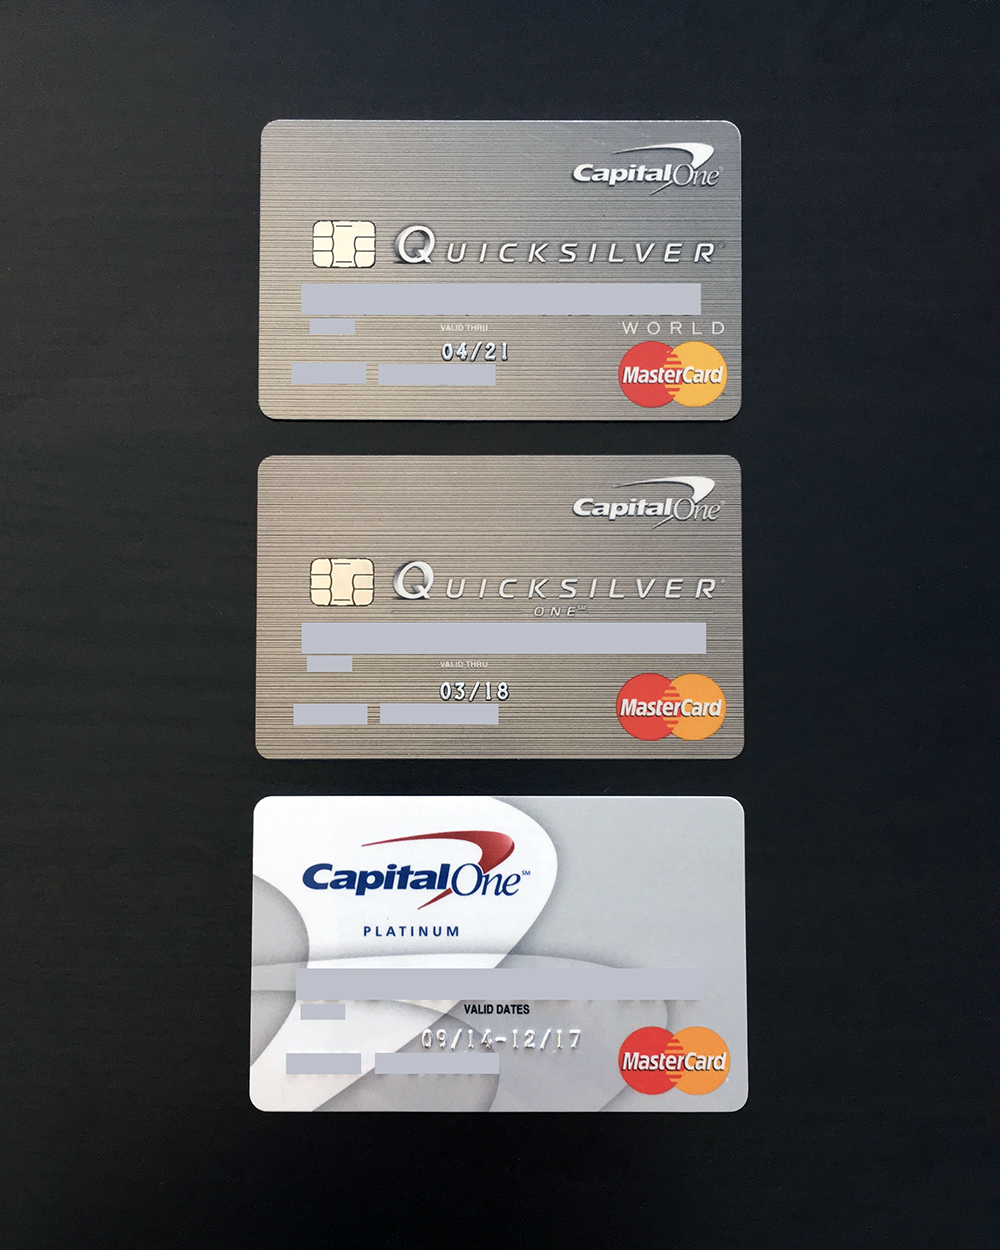 [T]he Capital One Quicksilver Rewards Credit Card is a good choice if you are looking for a card that offers decent rewards but doesn't require excellent credit. It can be difficult to find a rewards card if you have less than stellar credit, but this Capital One credit card offers several benefits.